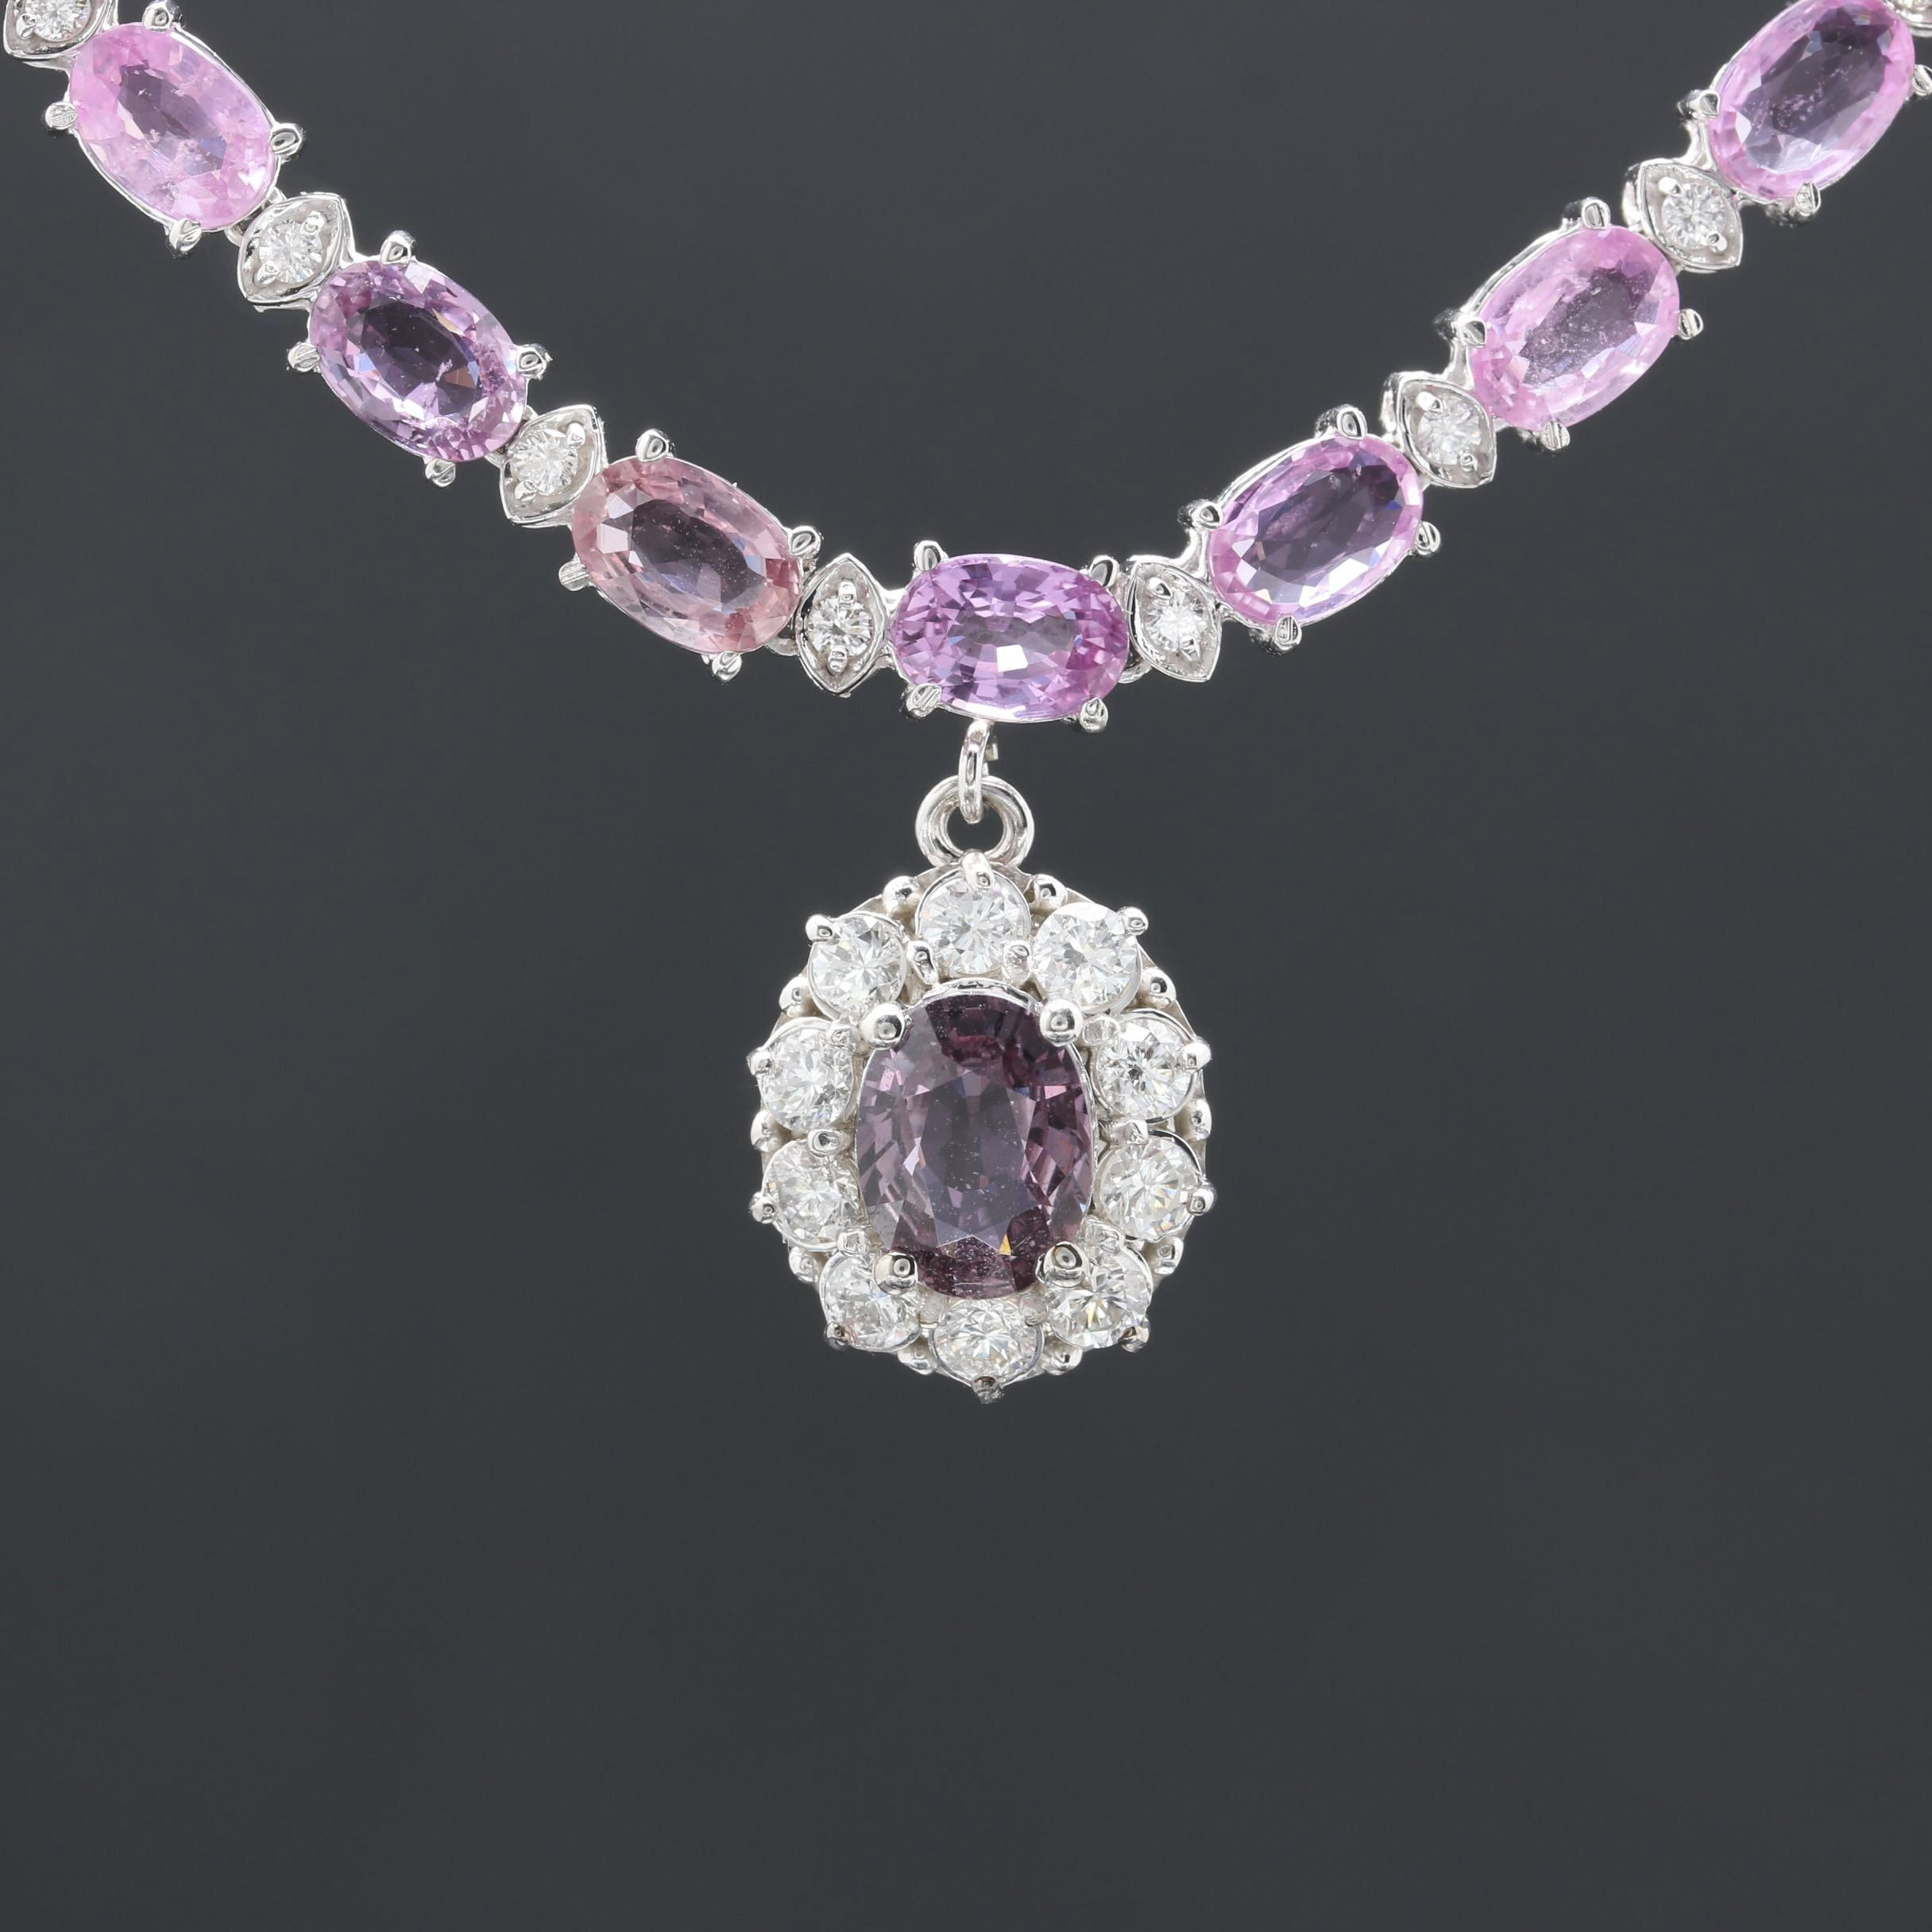 14K White Gold Pink Sapphire and 1.73 CTW Diamond Necklace